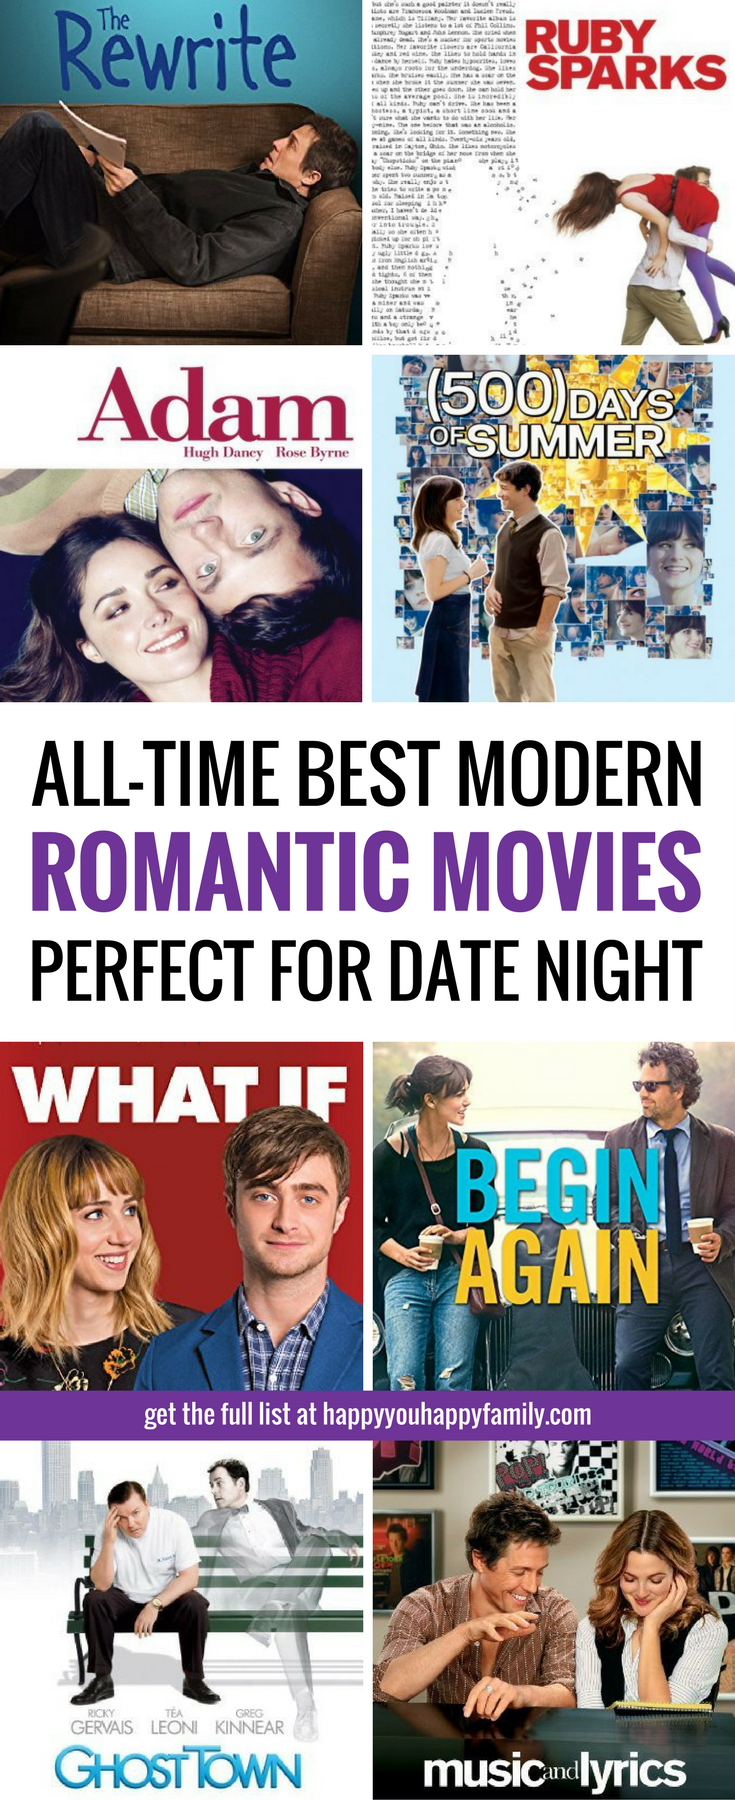 10 Movies That Will Make Your Marriage Happy, According to